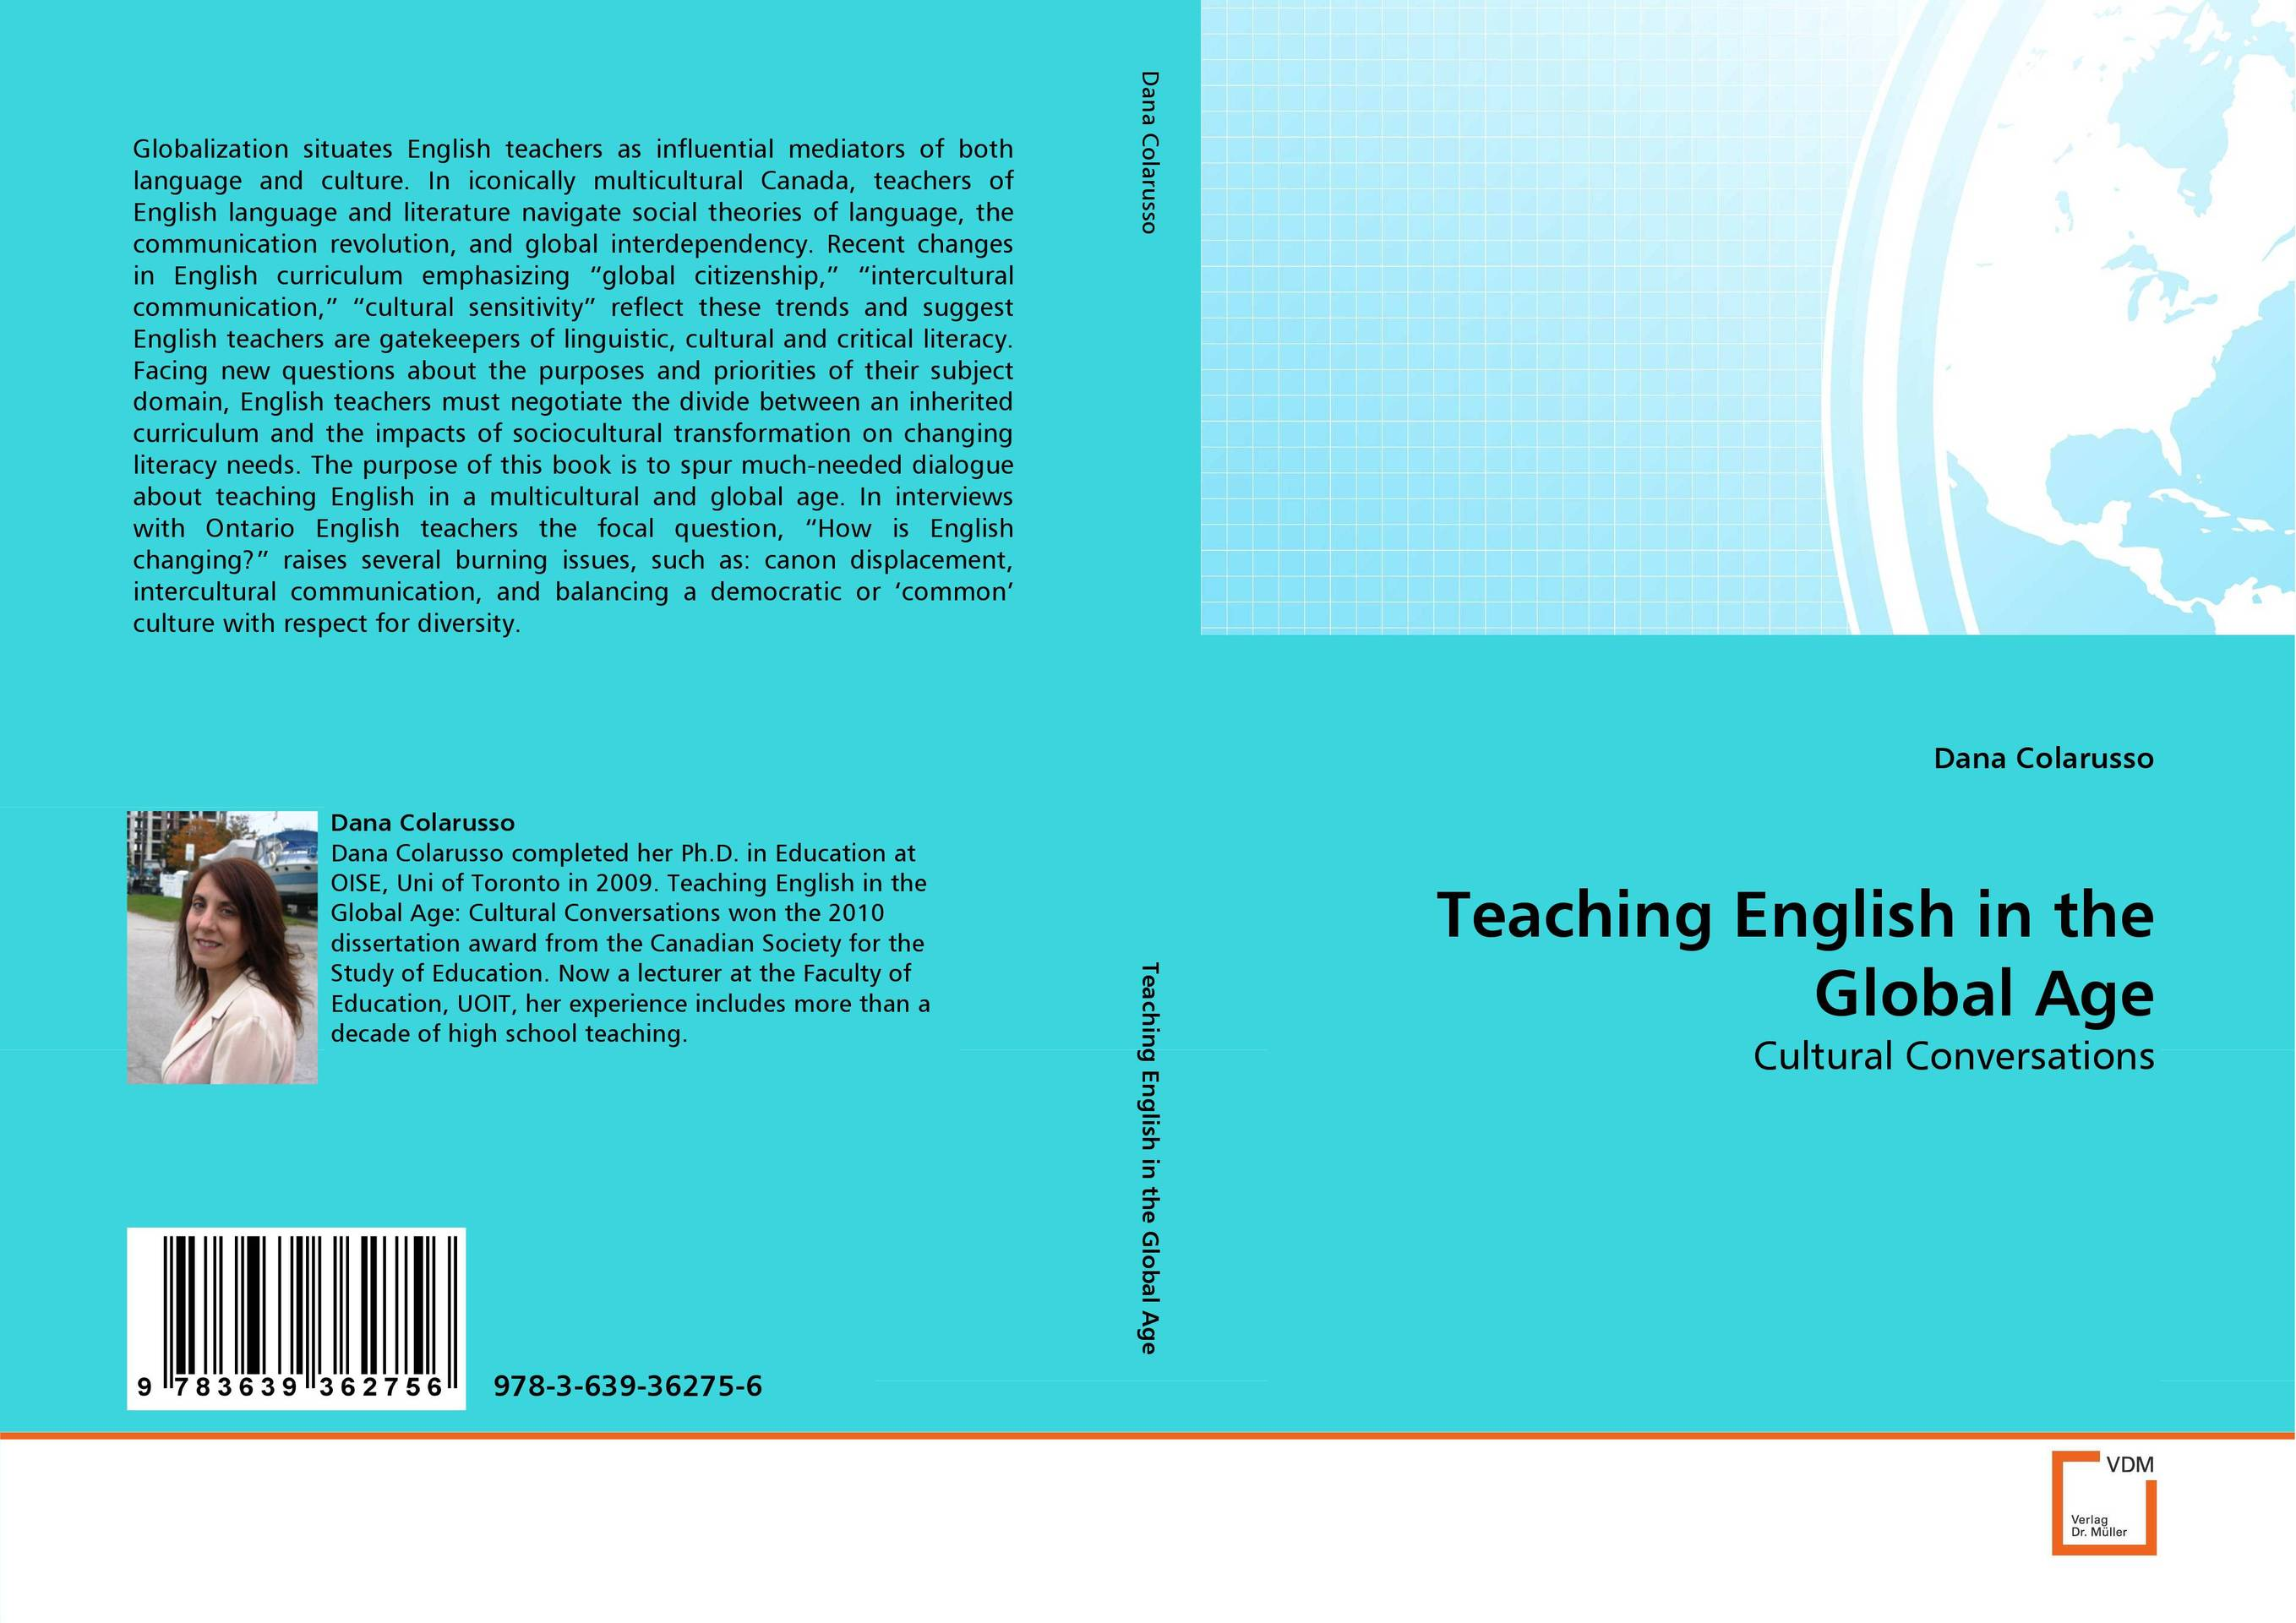 Teaching English in the Global Age linguistic diversity and social justice